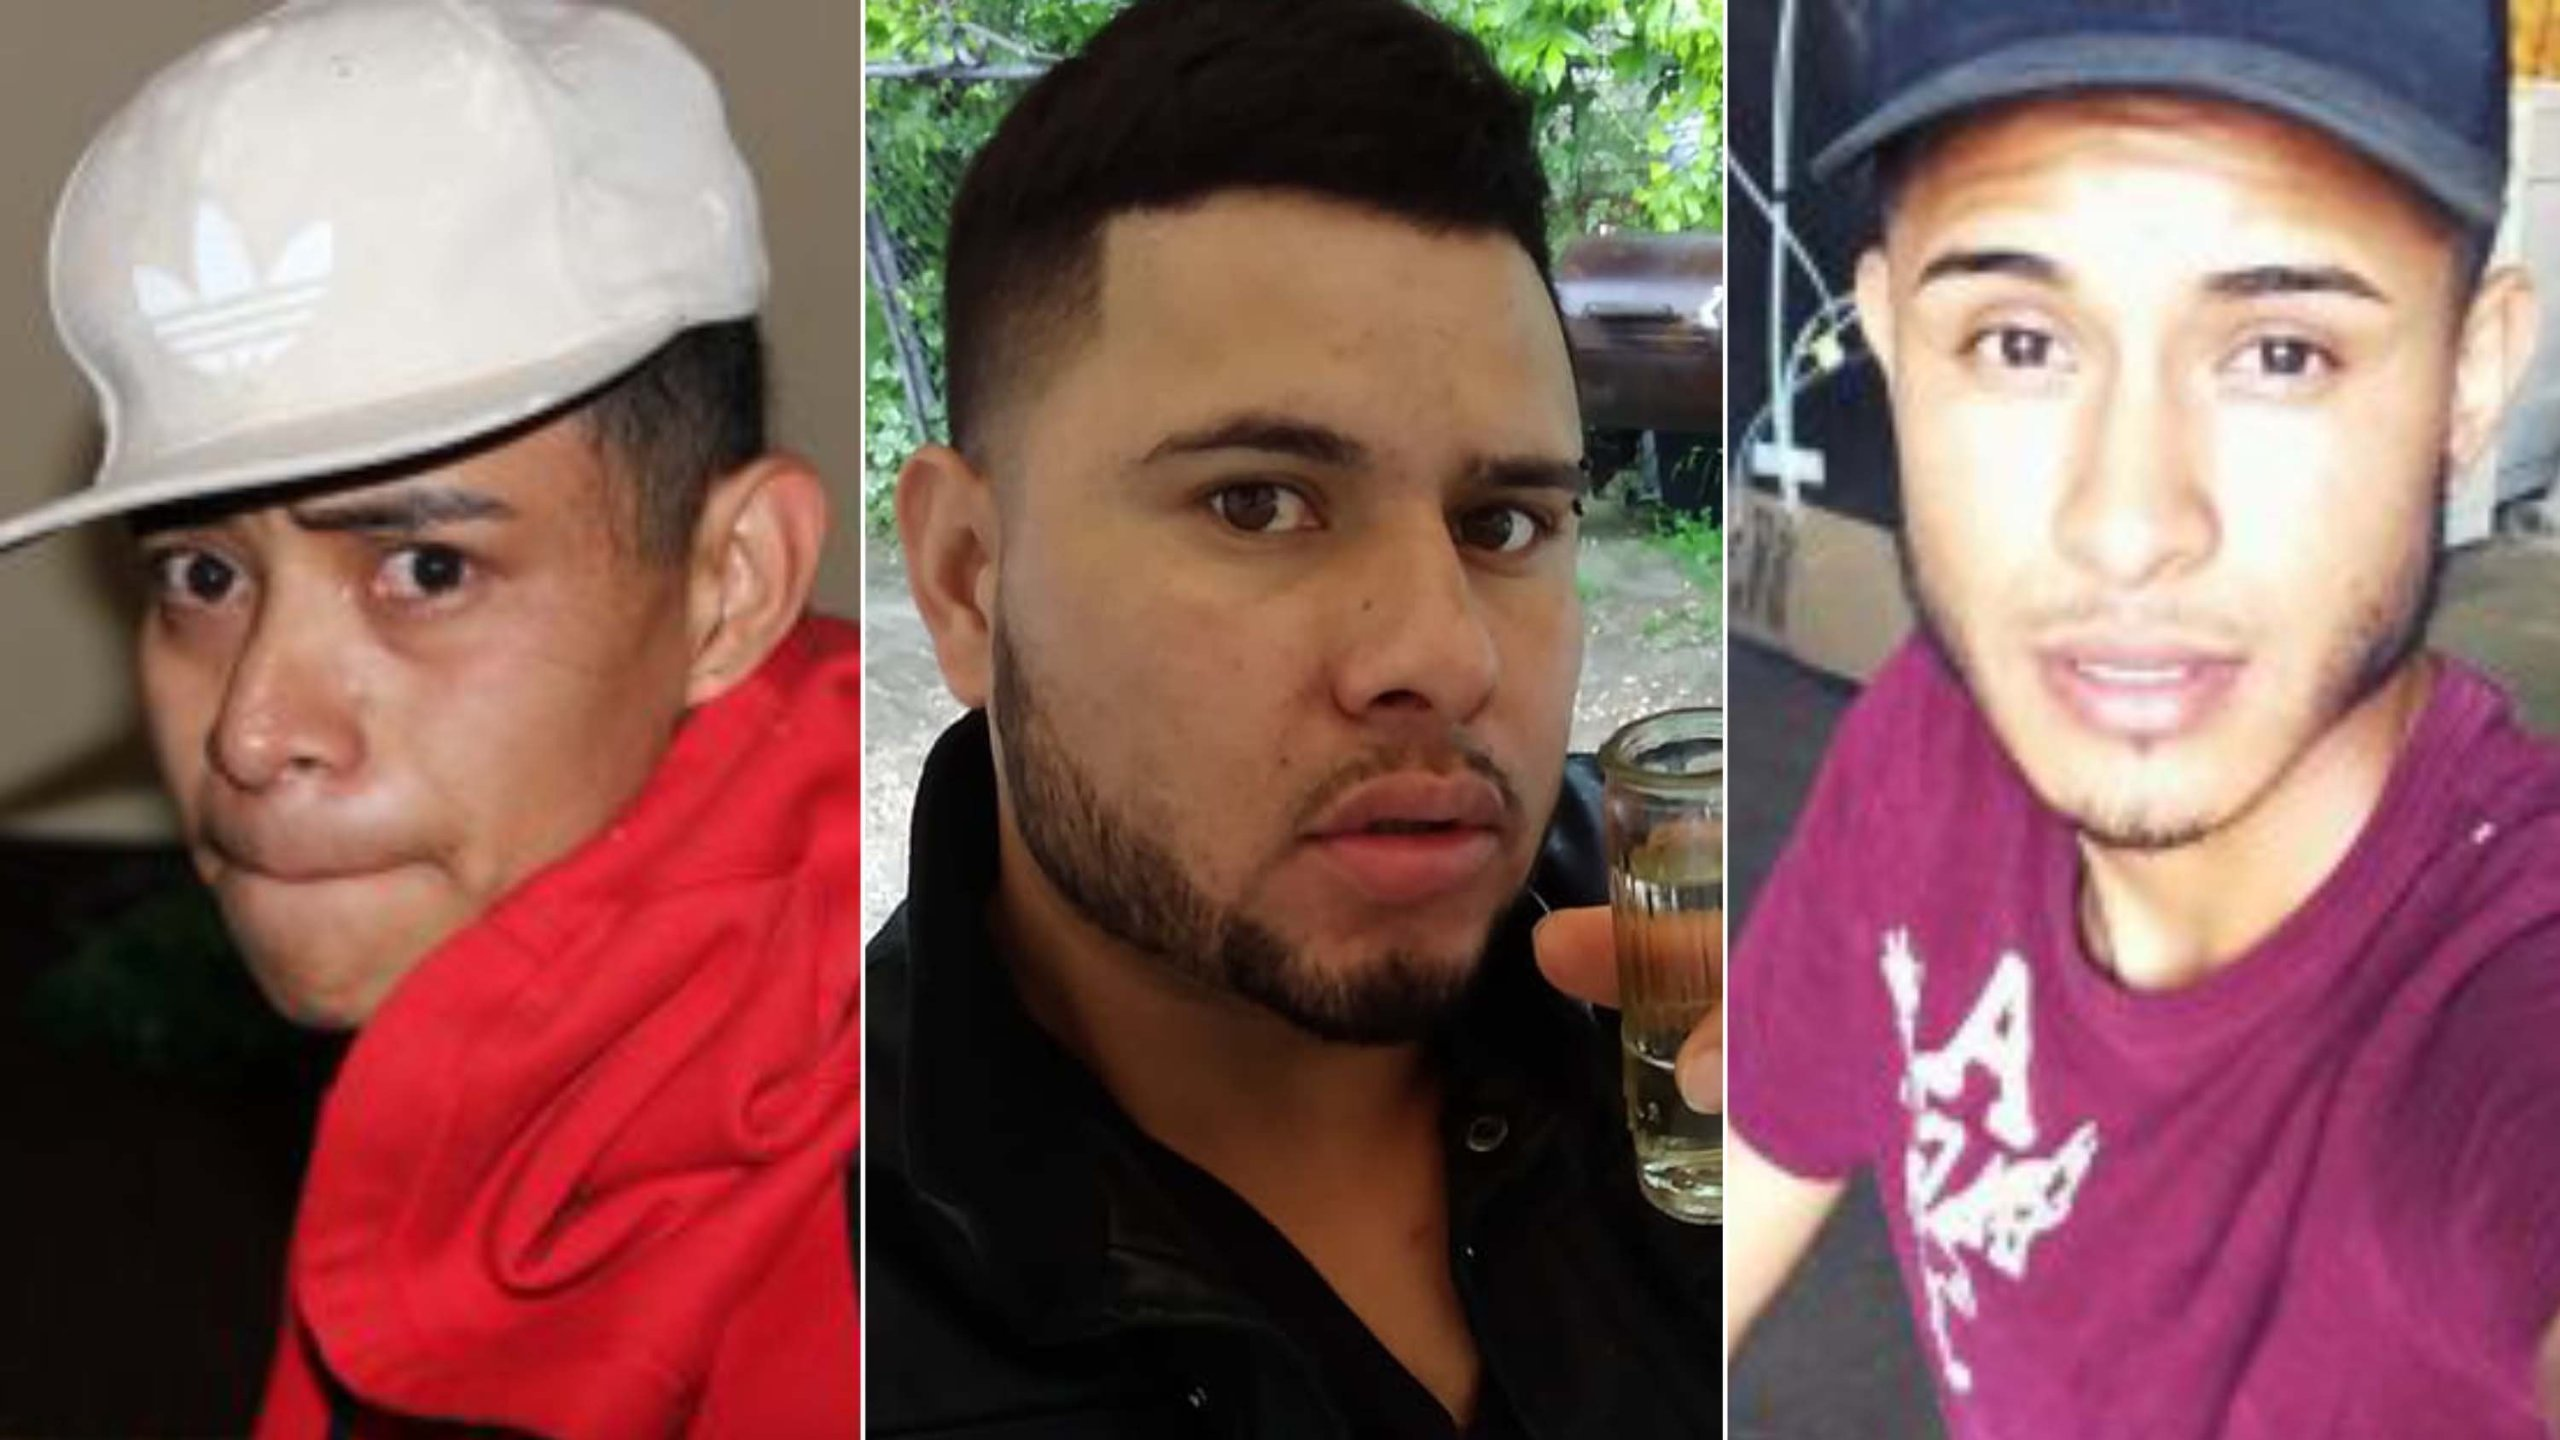 From left: Juan Garcia Rios Adiel, David Ramos Contreras and Arnulfo Ramos are in photos released by the Bowling Green Police.